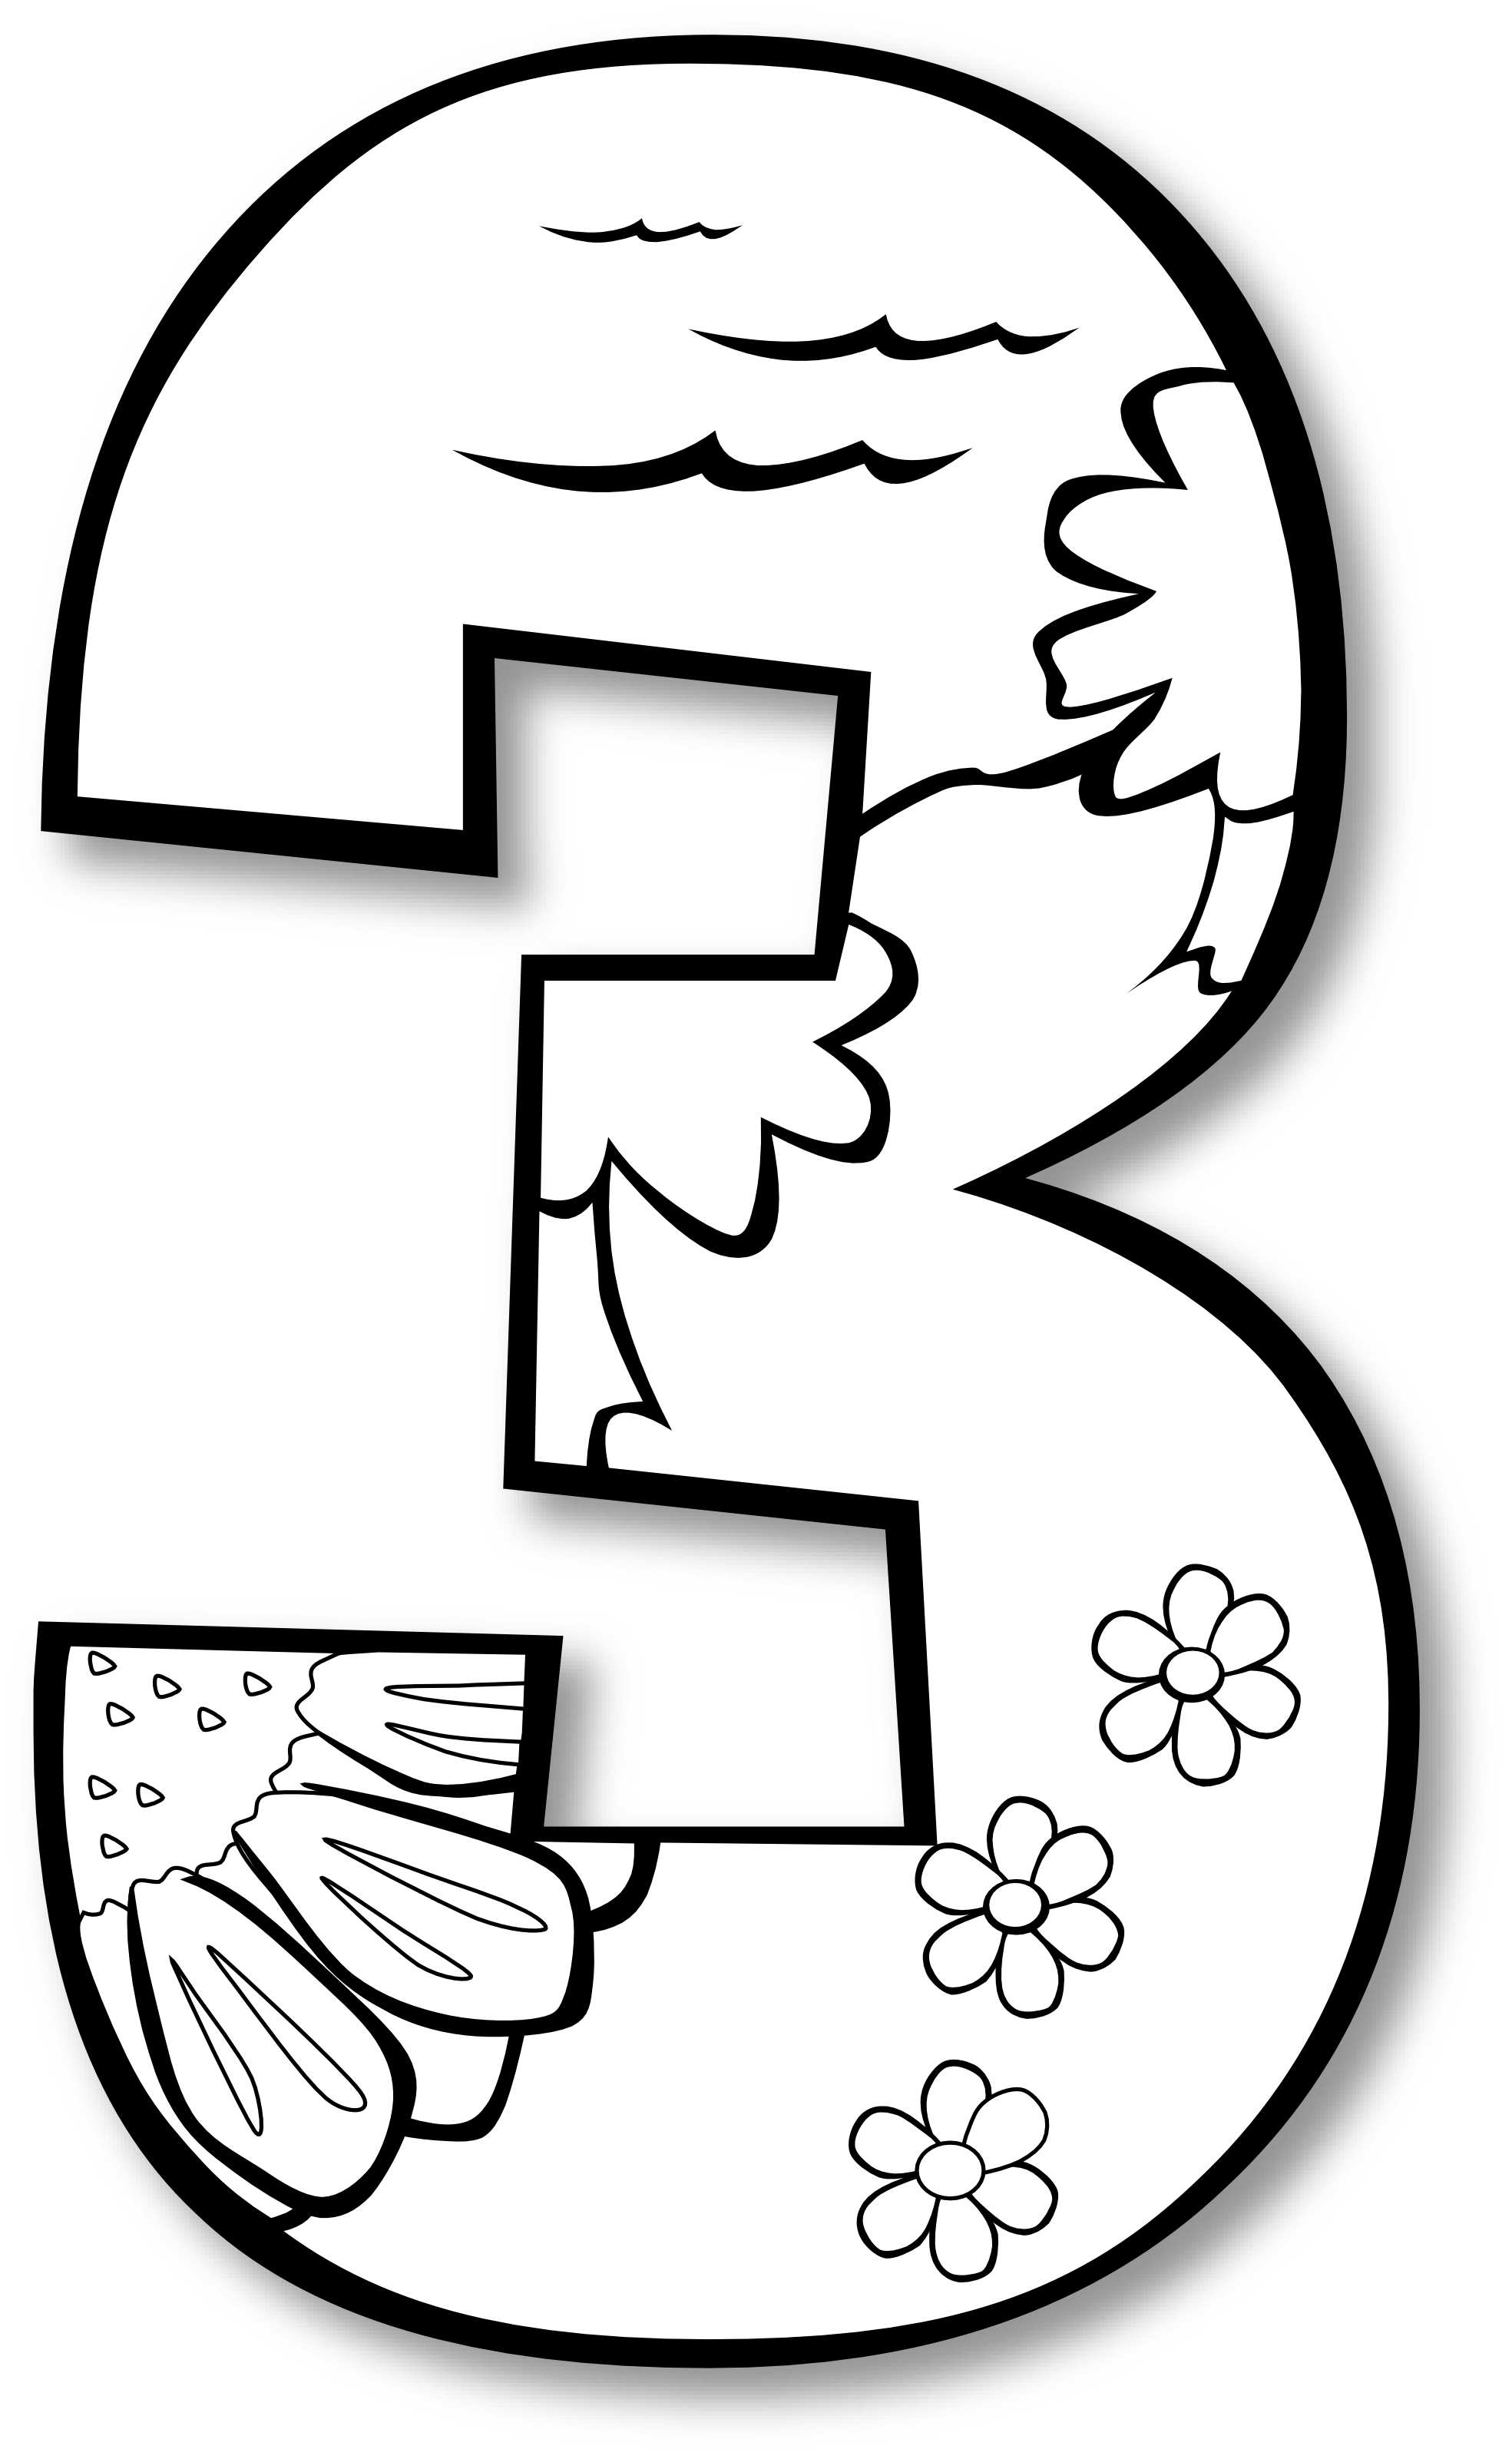 Number clipart black and white clipart stock 3 Number Ge 1 Black White | Clipart Panda - Free Clipart Images clipart stock